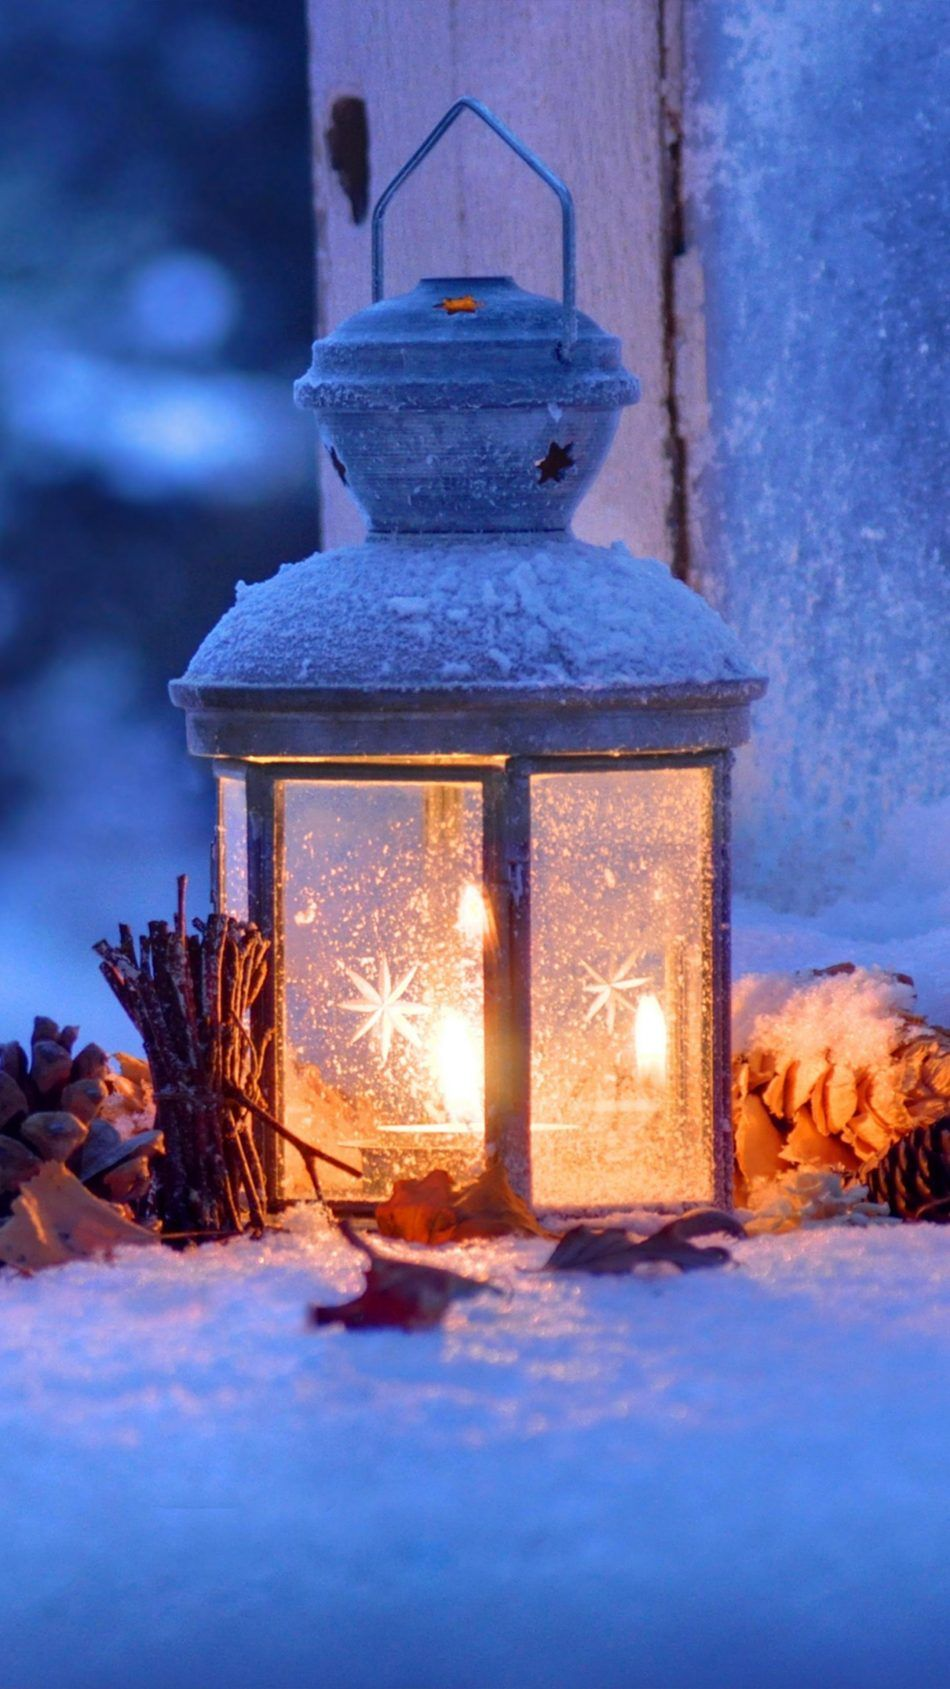 Lantern Snow Winter Christmas Eve 4k Ultra Hd Mobile Wallpaper Christmas Wallpaper December Wallpaper Christmas Lanterns